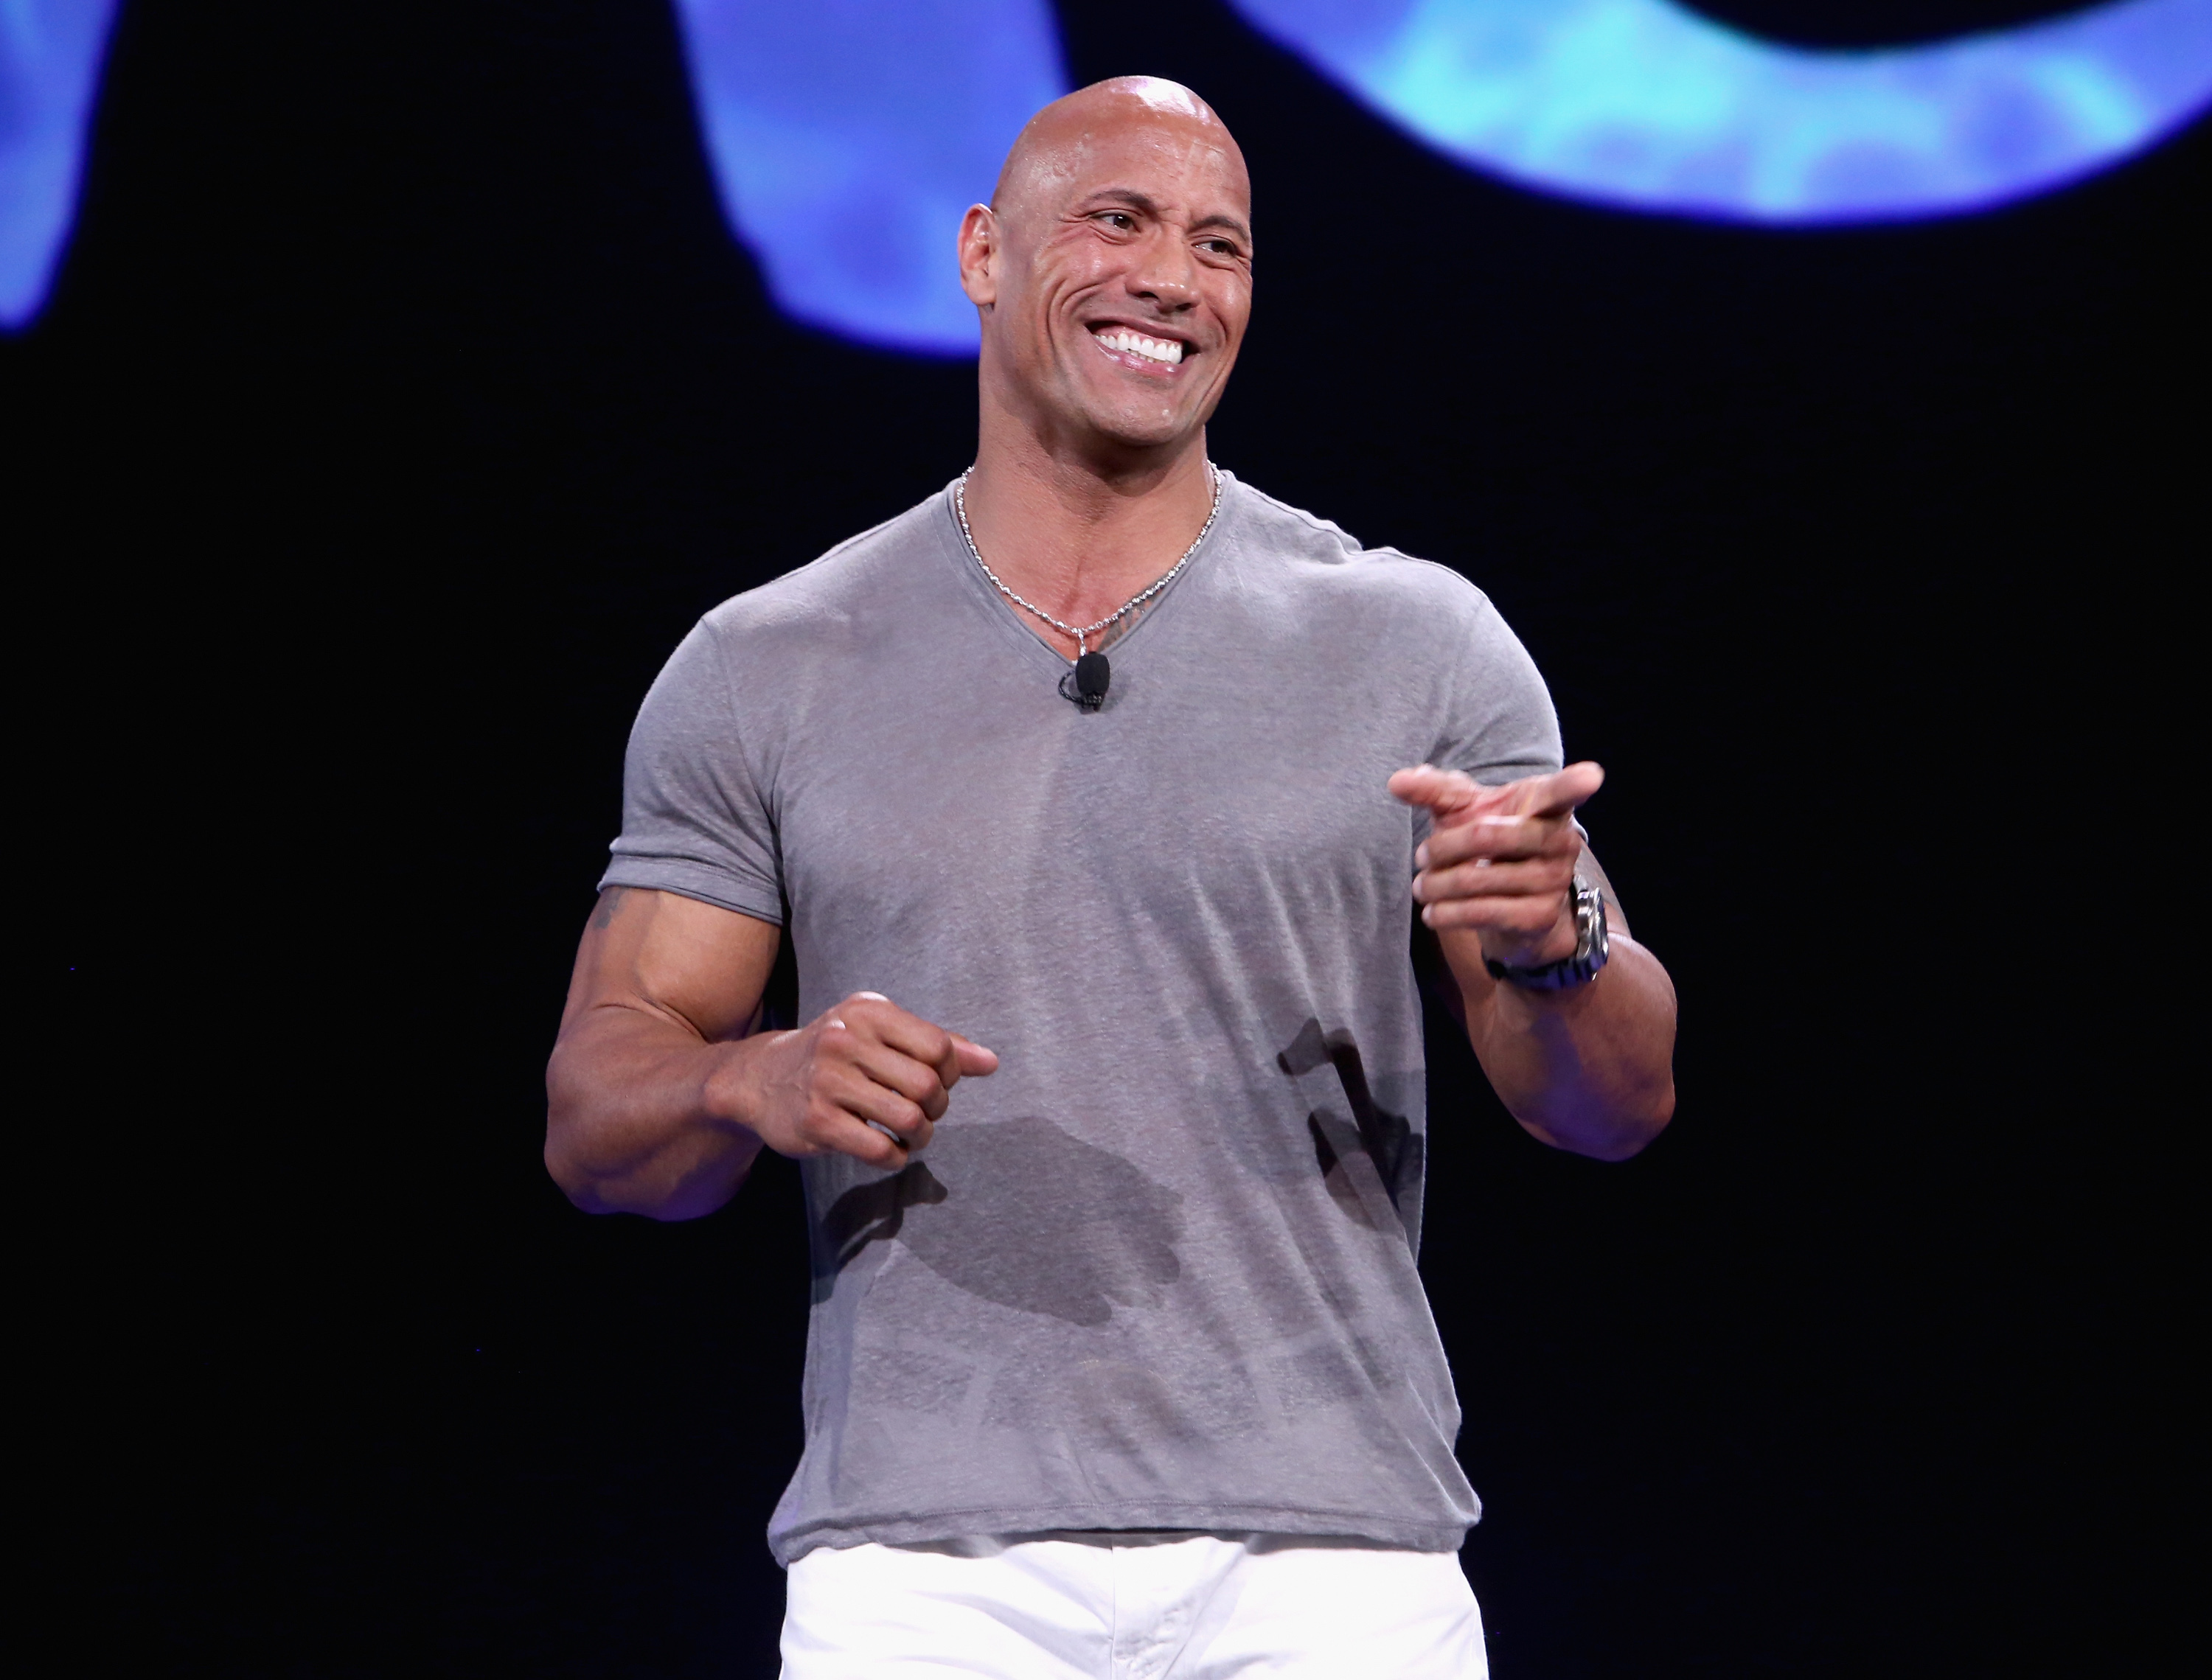 Dwayne-Johnson-of-MOANA-took-part-today-in-'Pixar-and-Walt-Disney-Animation-Studios-The-Upcoming-Films'-presentation-at-Disney's-D23-EXPO-2015-in-Anaheim